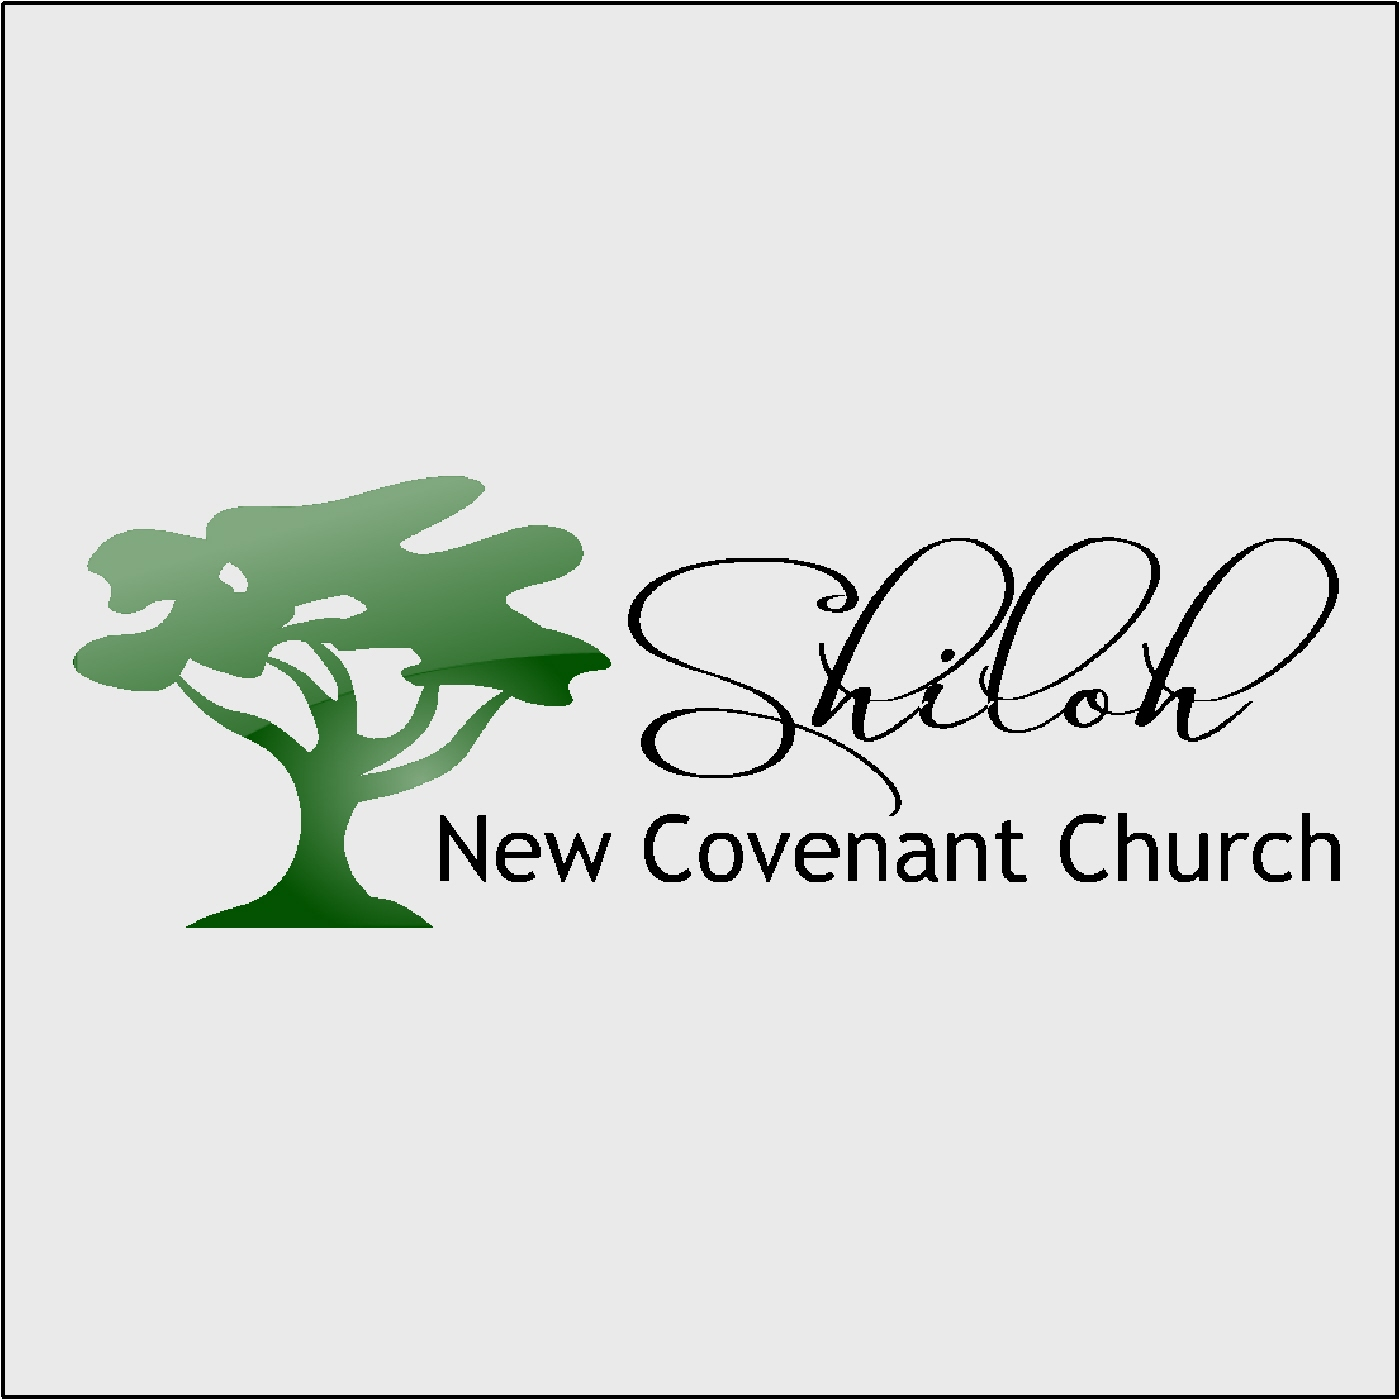 Shiloh New Covenant Church Podcast